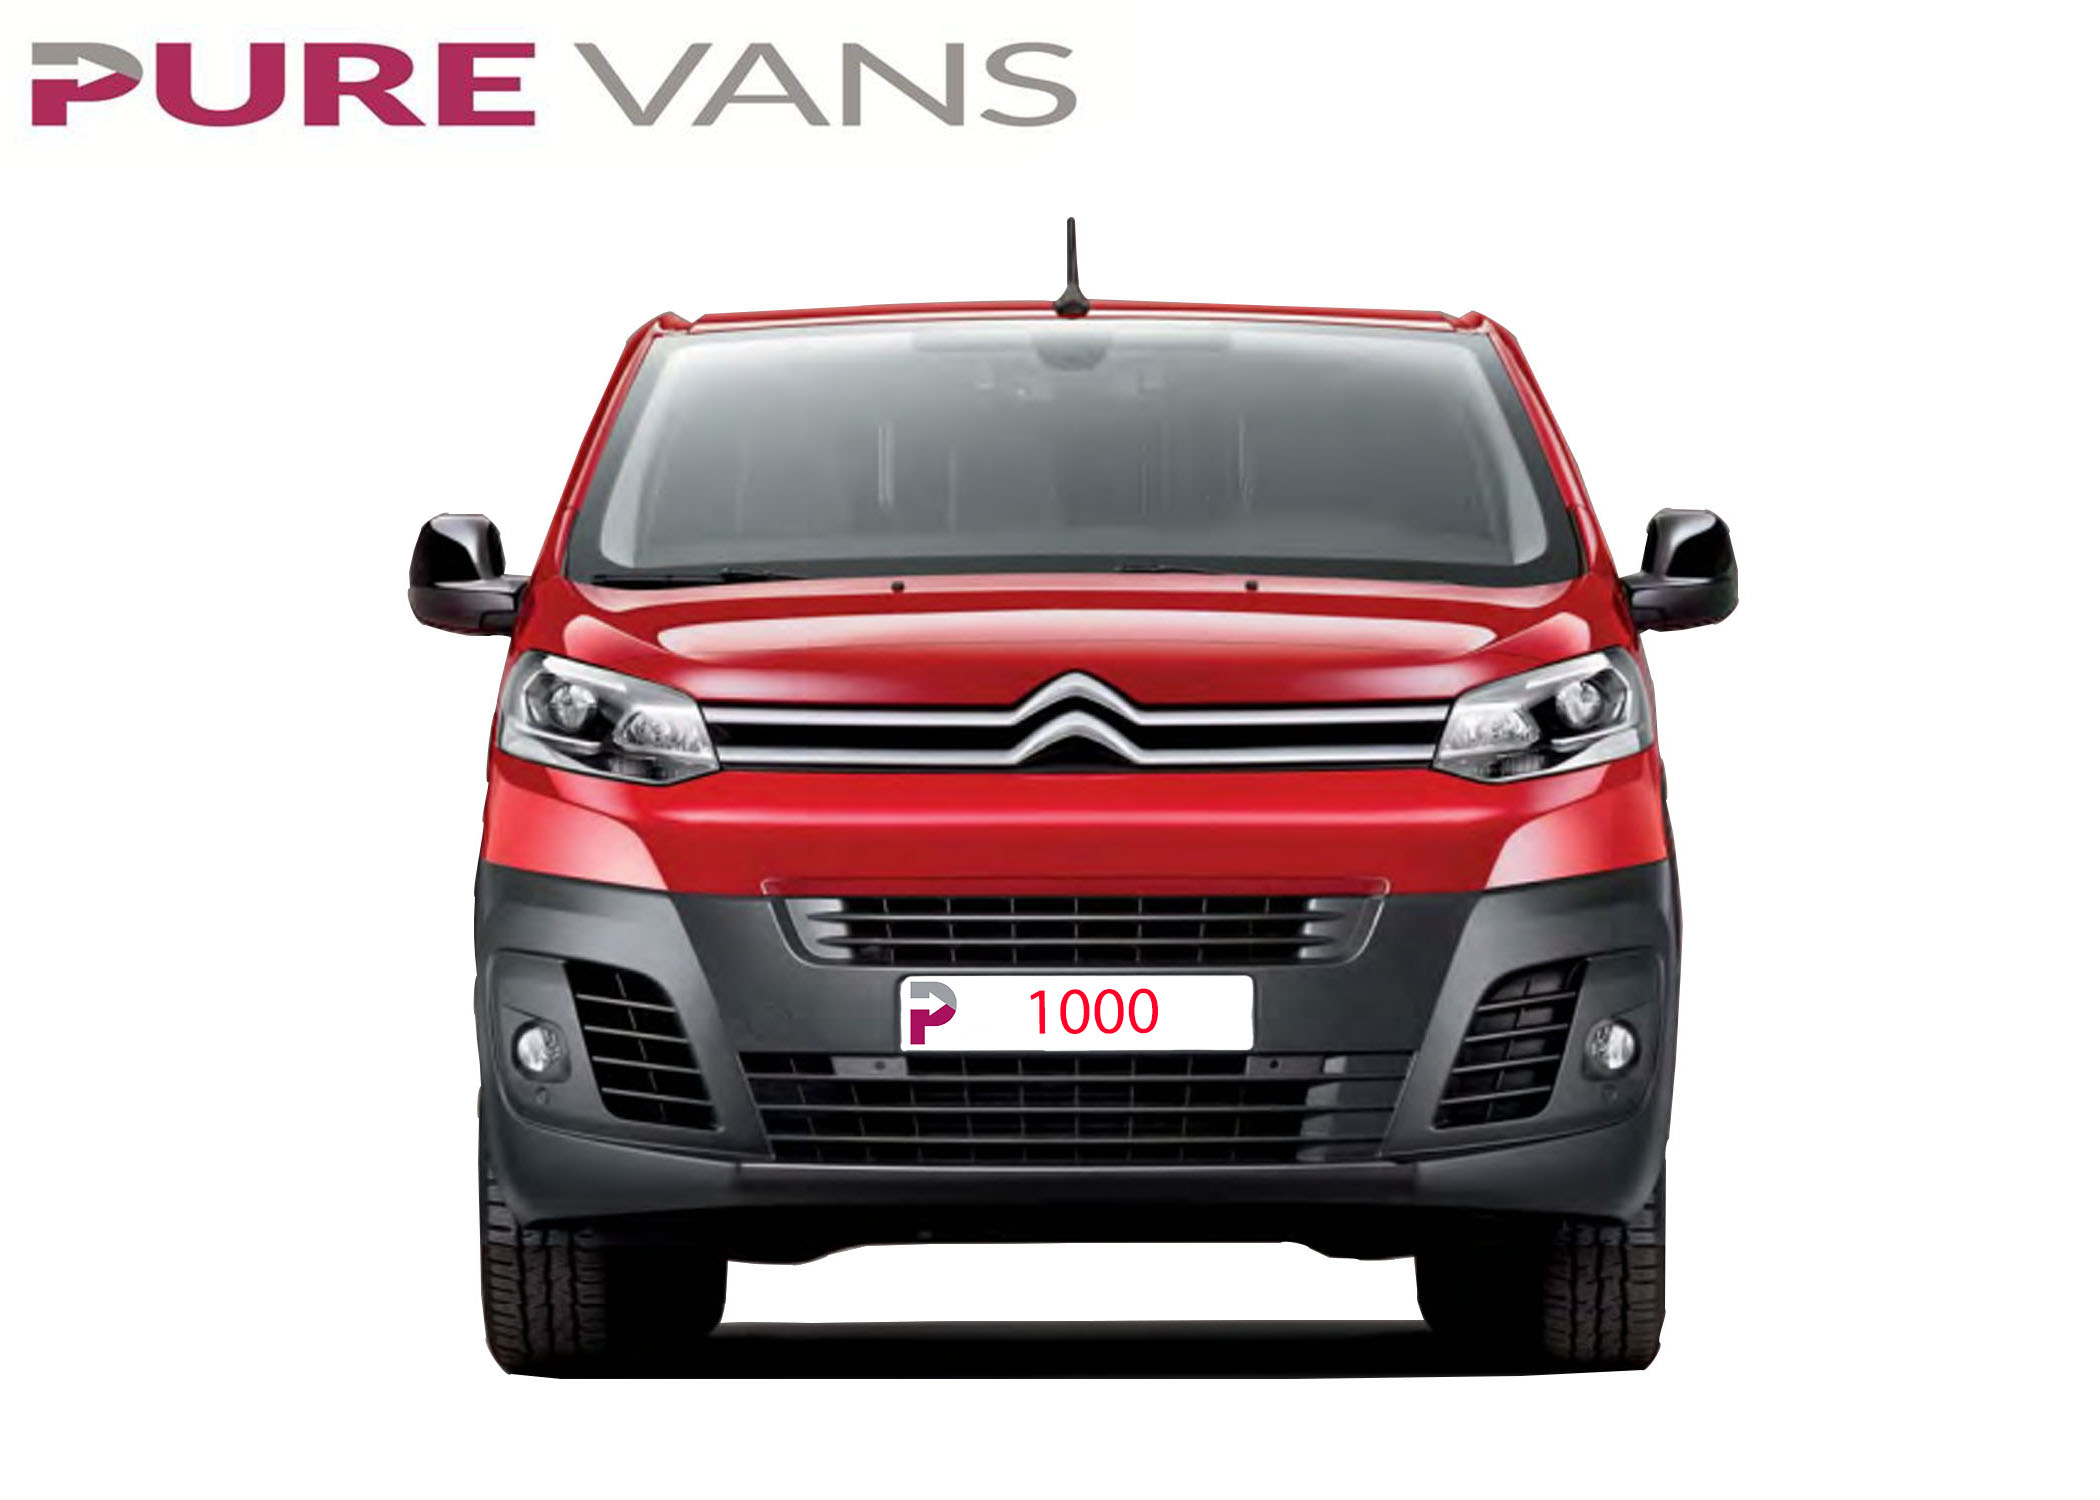 CITROEN DISPATCH XS 1000 BLUE HDI 95PS ENTERPRISE front view.jpg